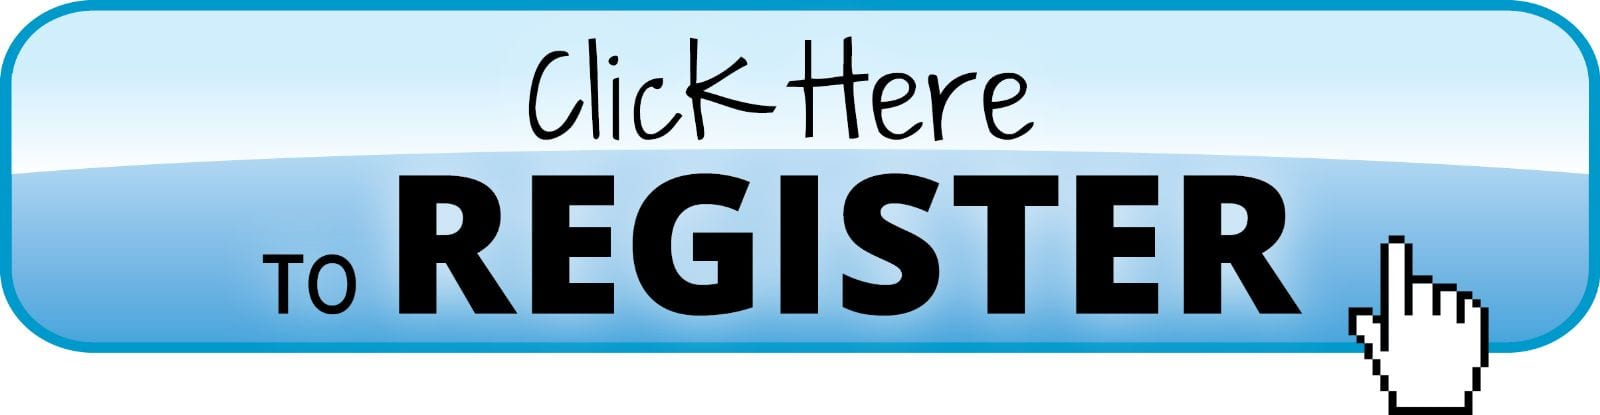 click-here-to-register